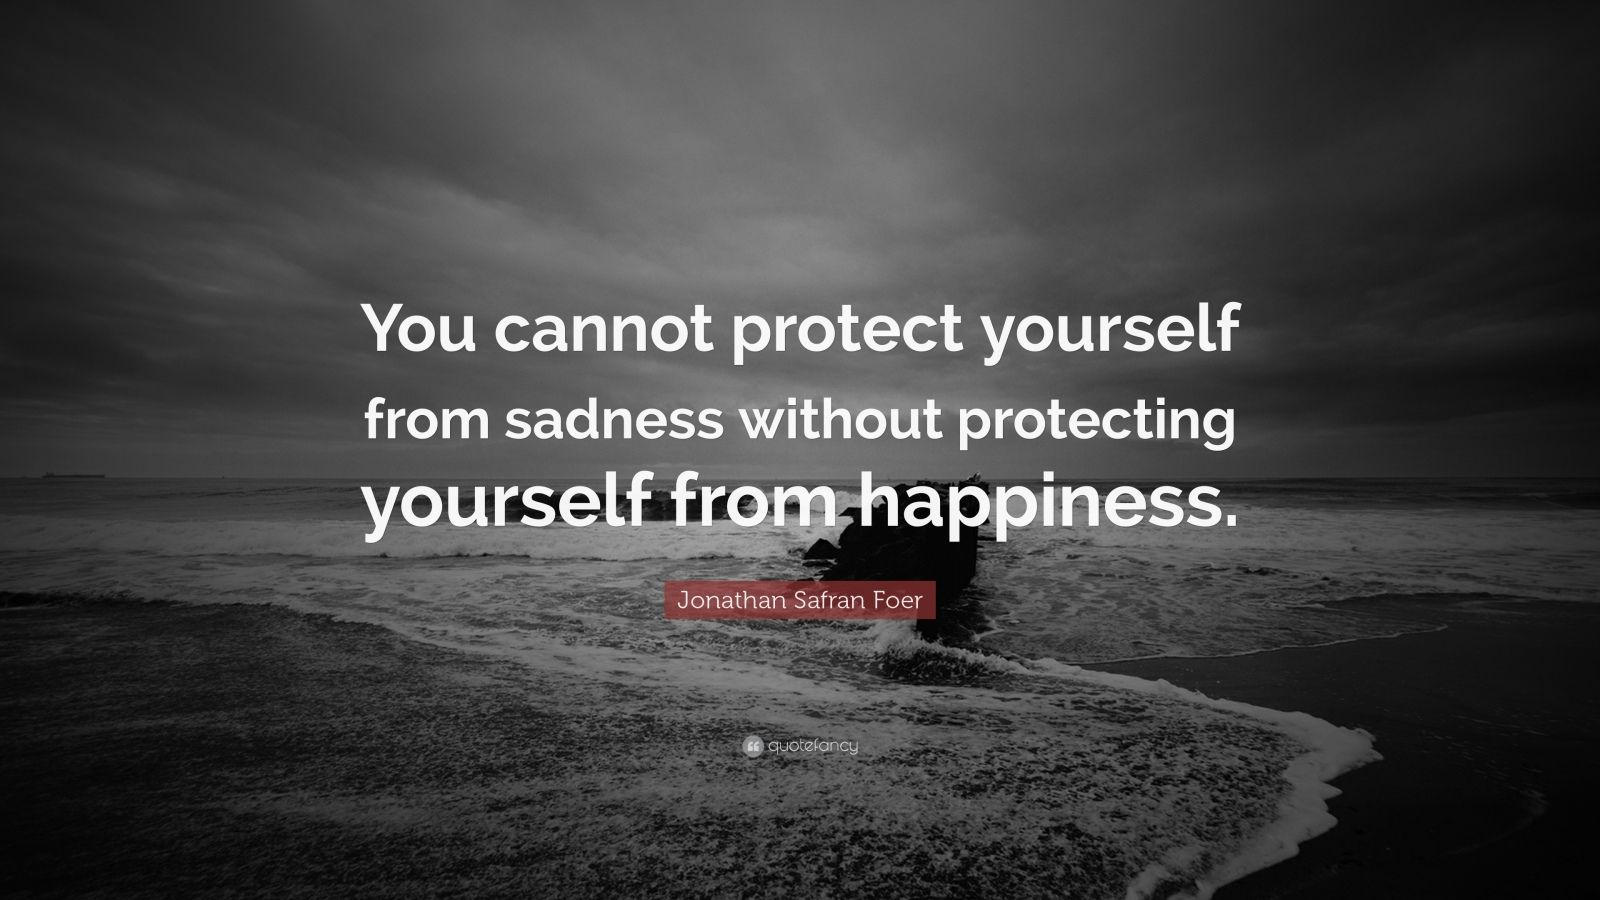 """Jonathan Safran Foer Quote: """"You cannot protect yourself from sadness without protecting yourself from happiness."""""""